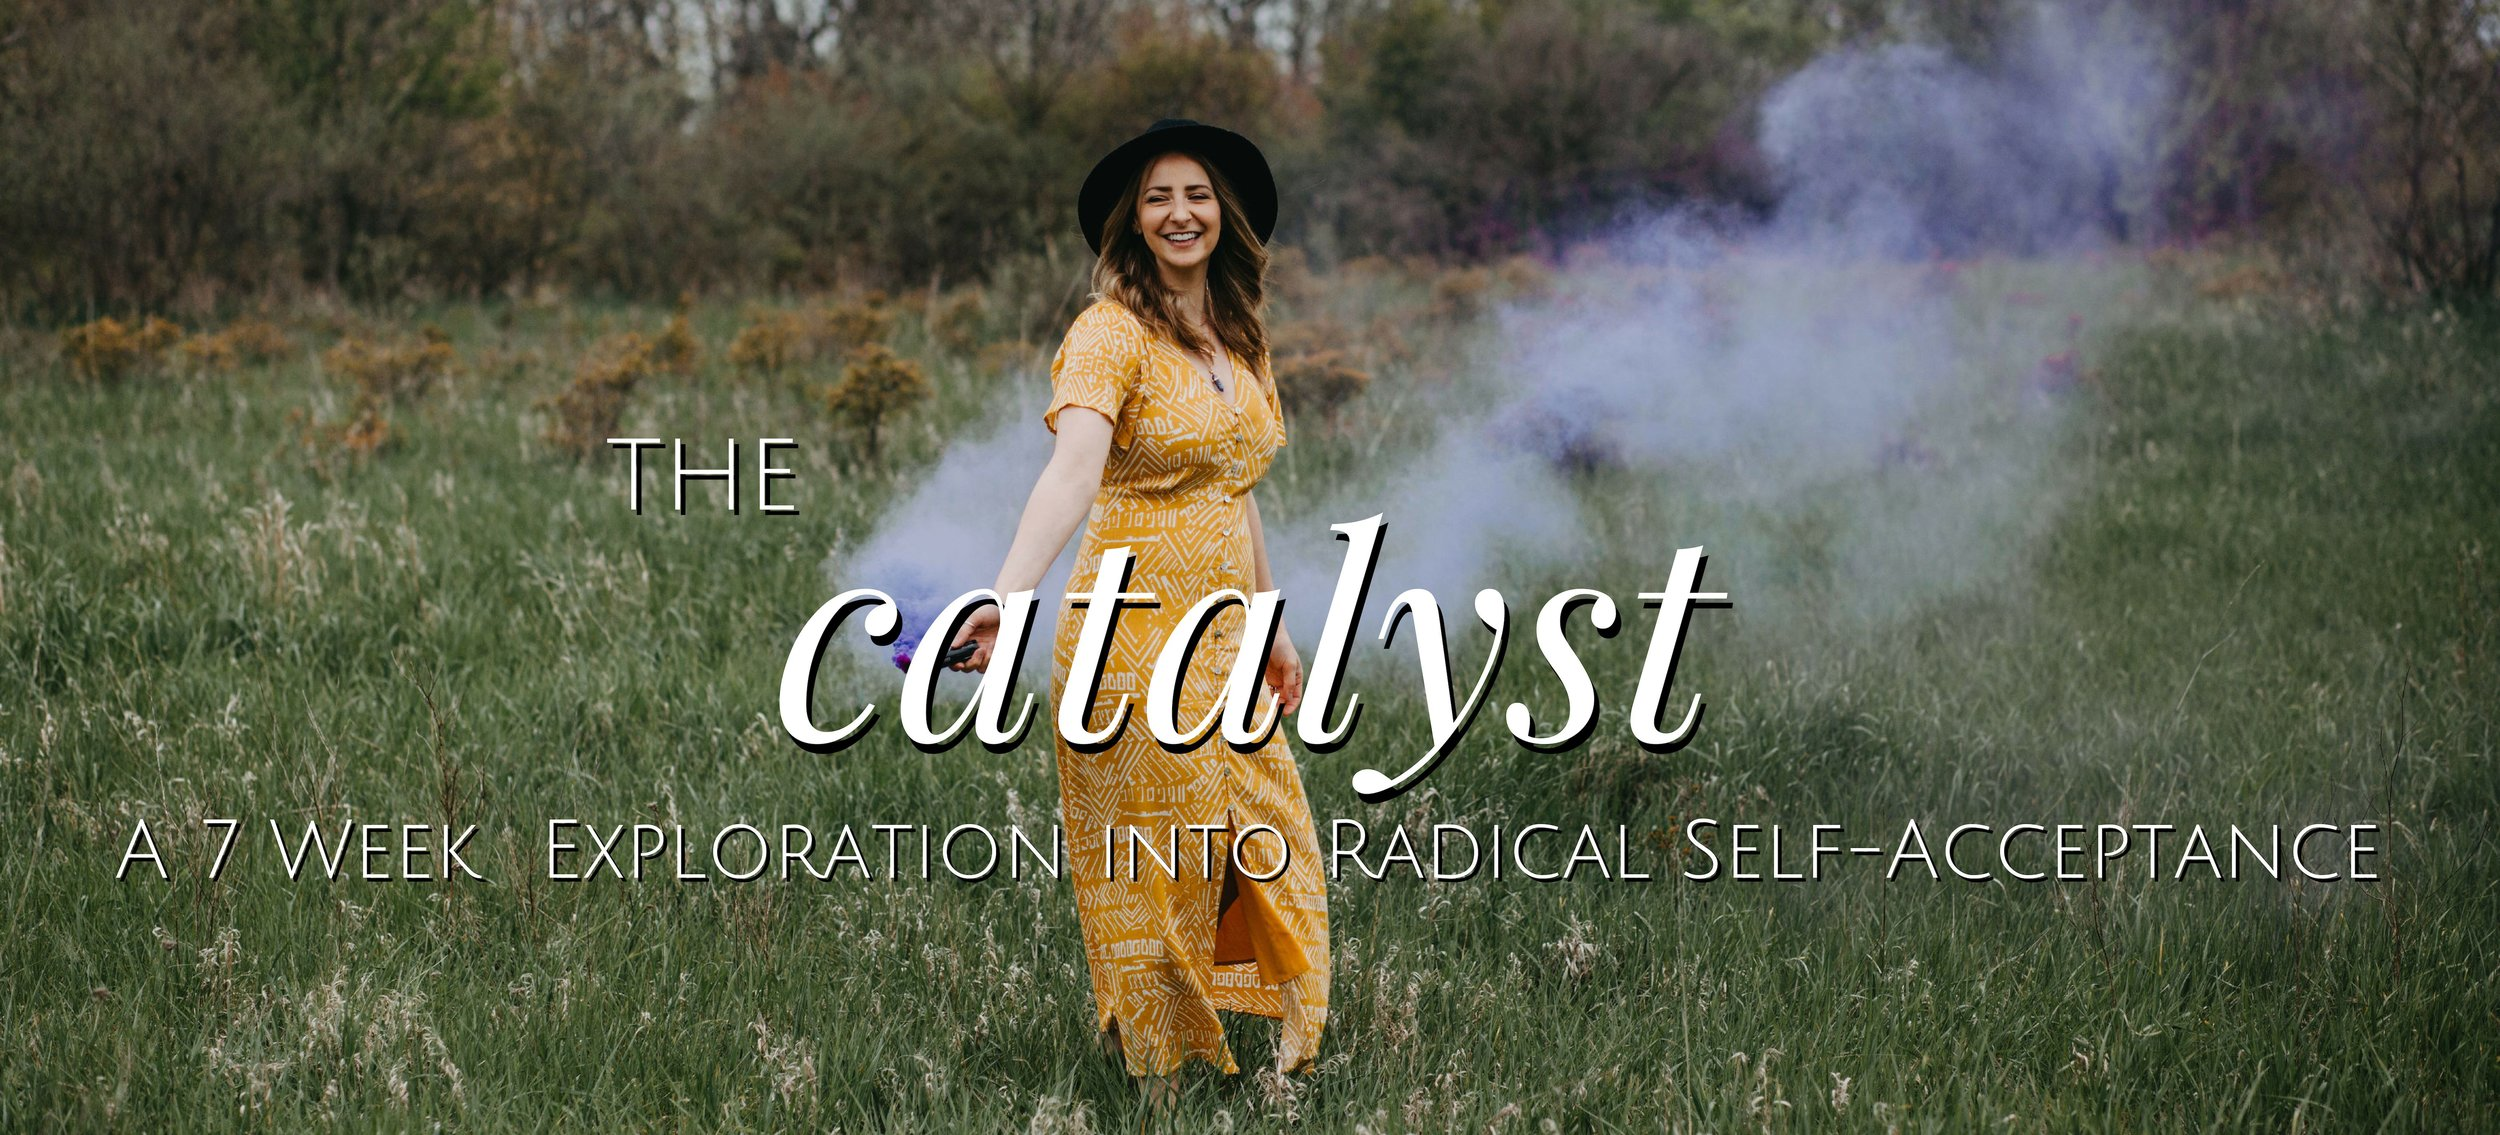 the-catalyst-is-here (1).jpg